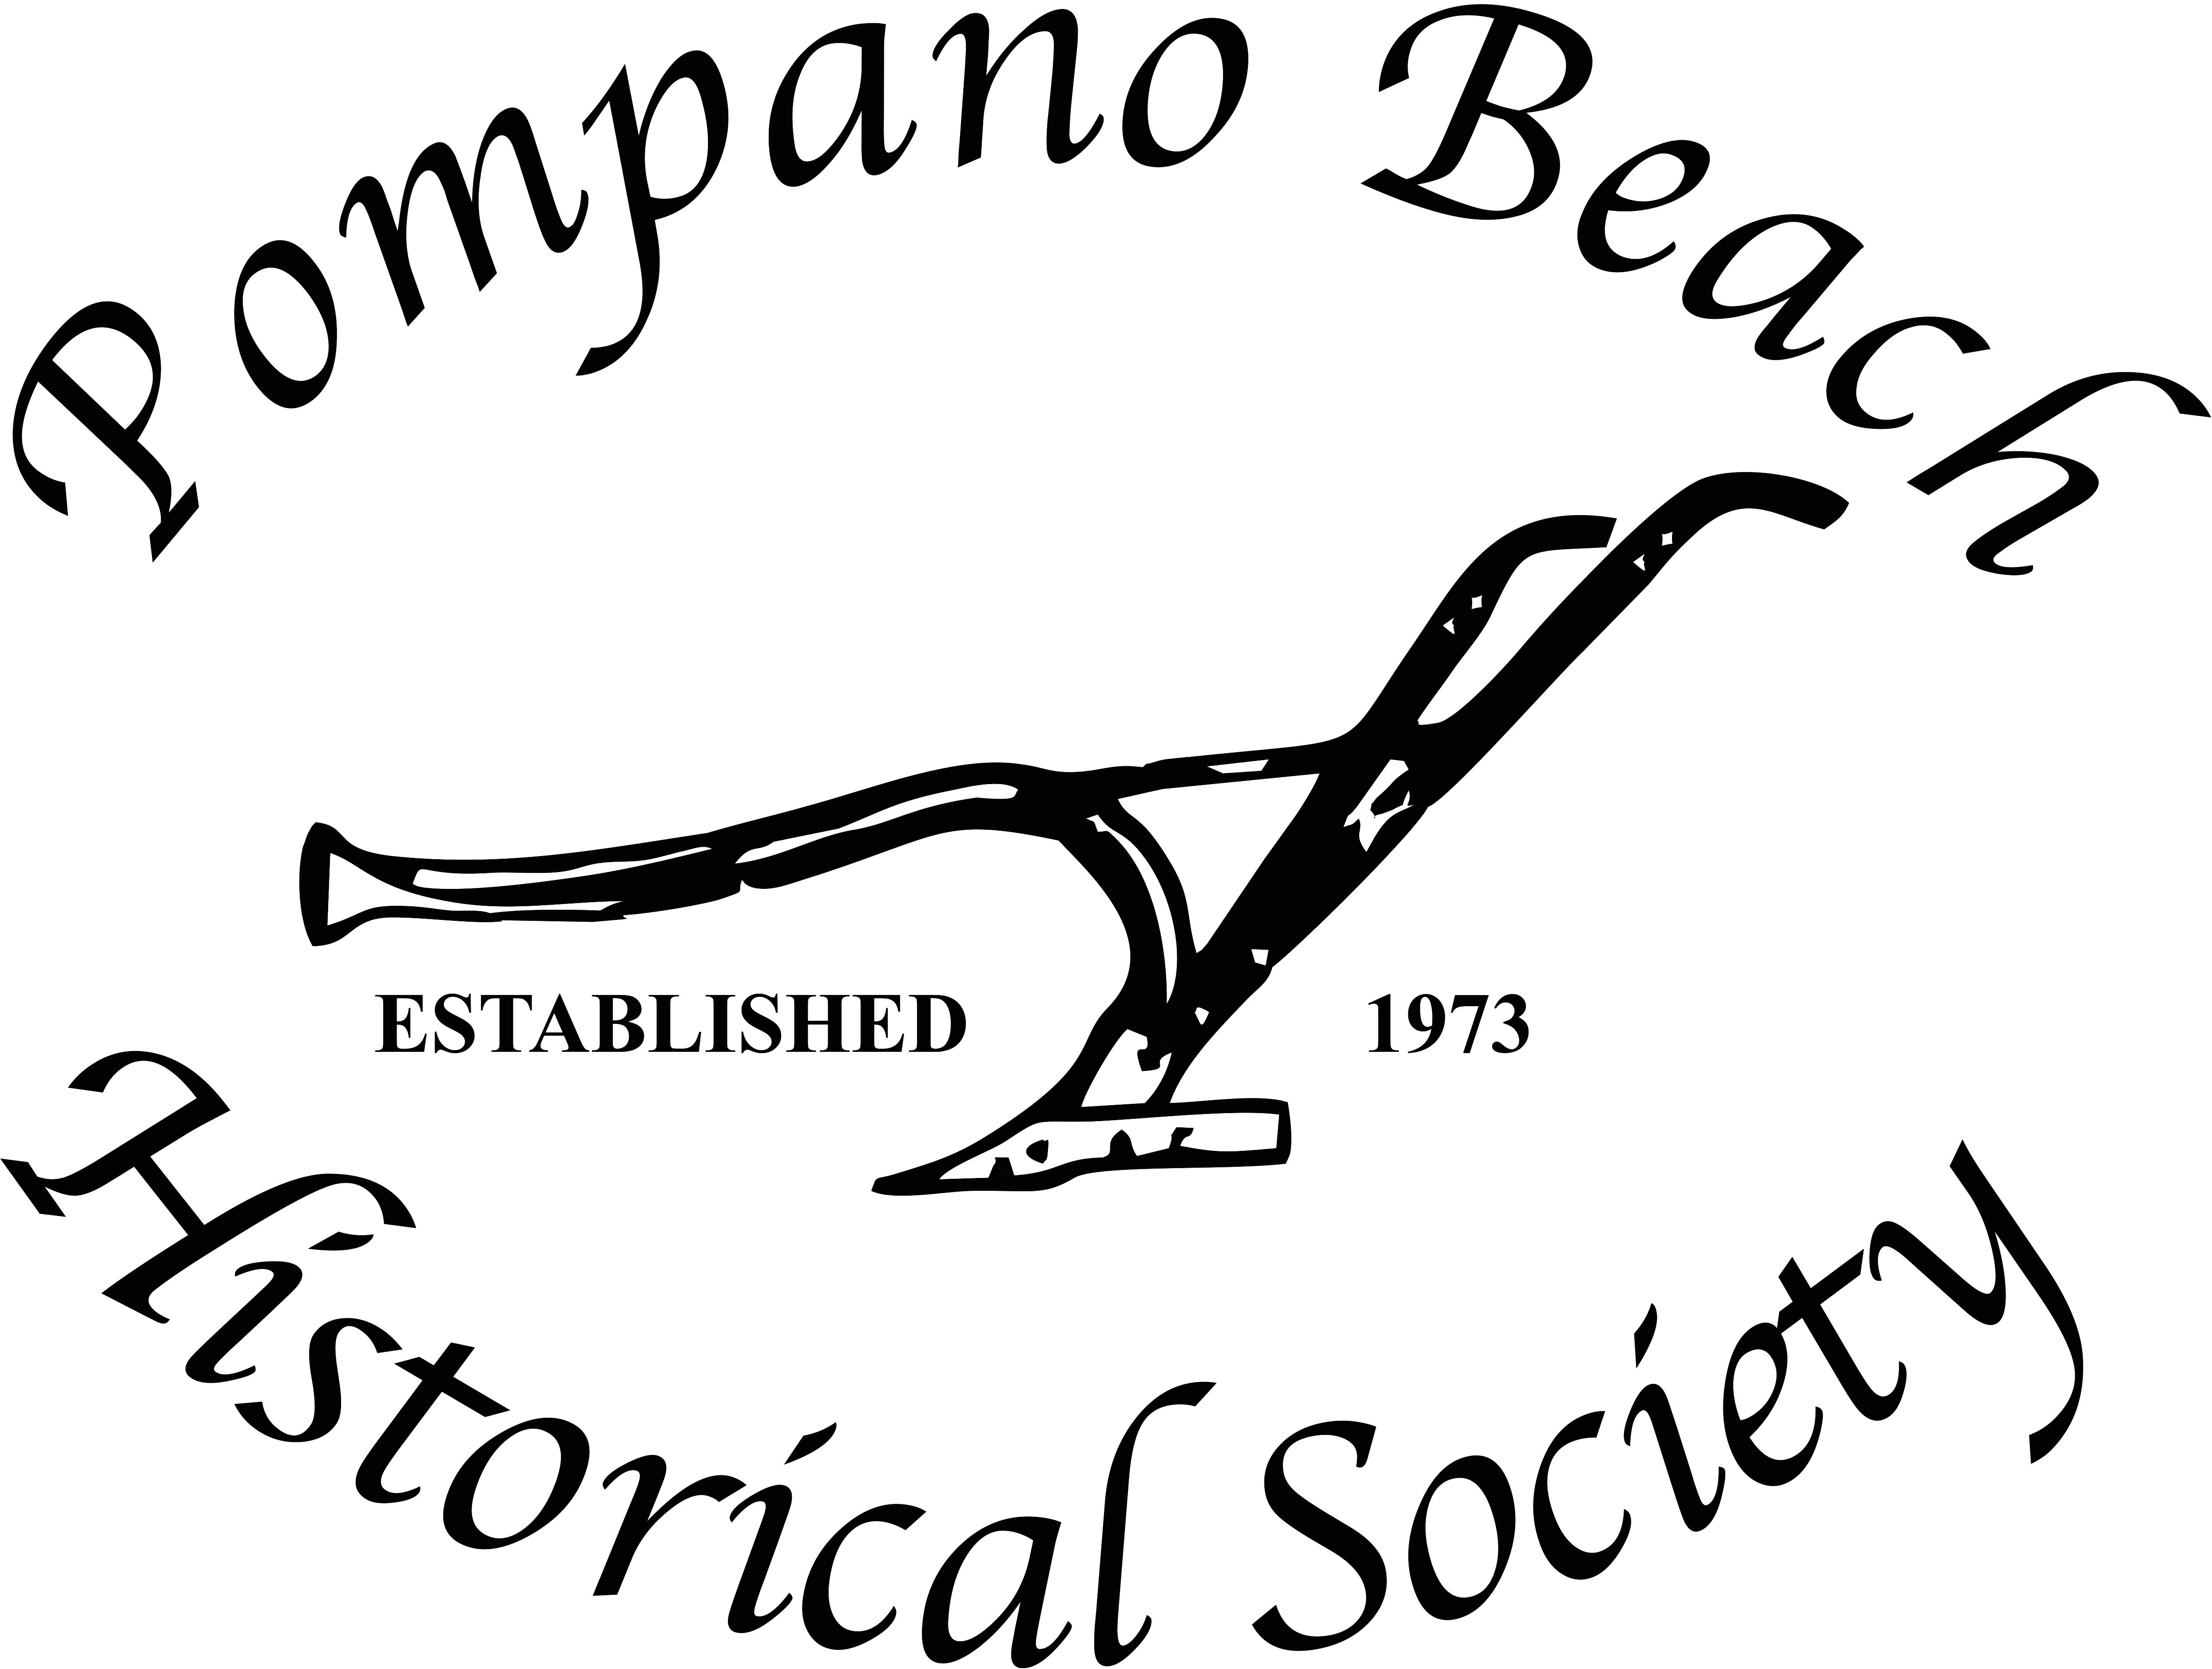 Pompano Beach Historical Society